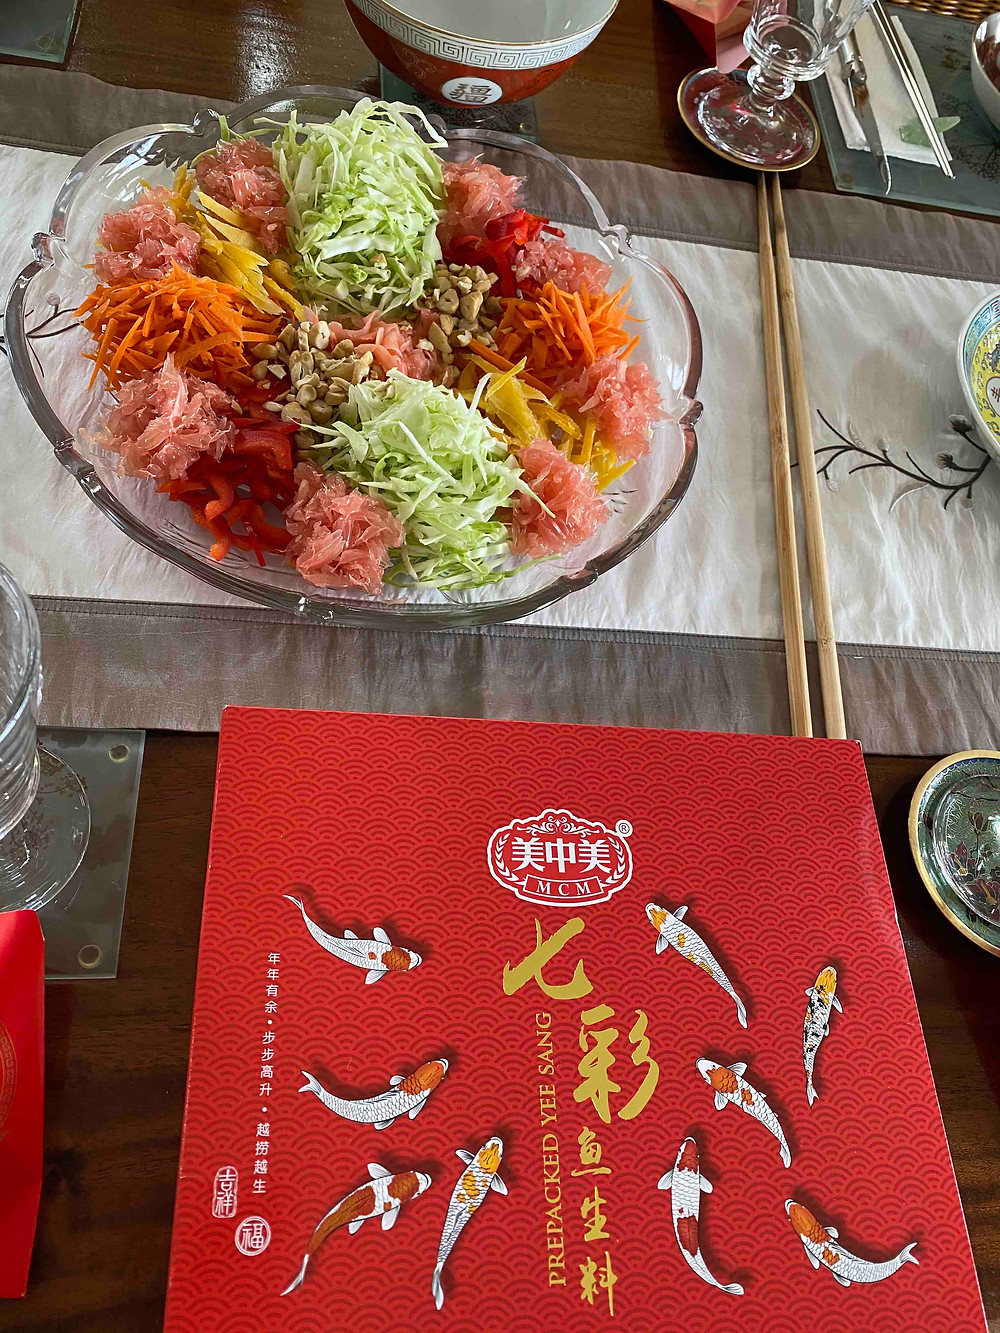 Yusheng, a salad dish to toss for good fortune, lo hei